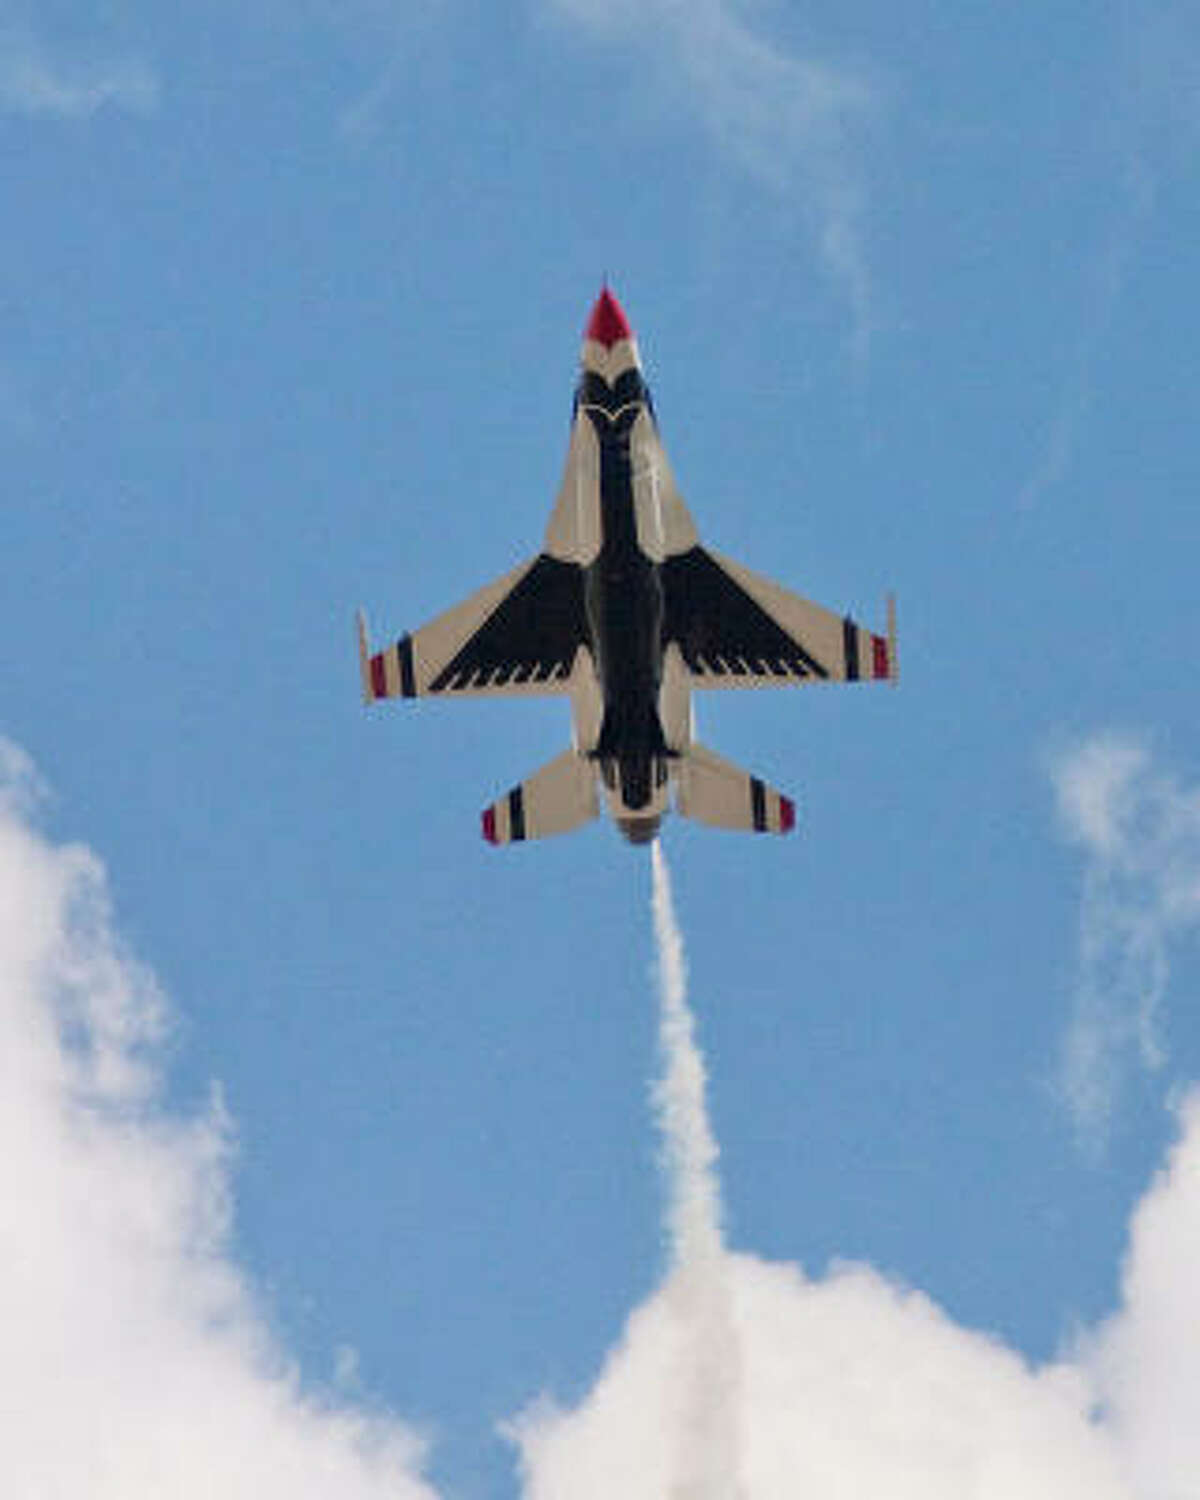 A Thunderbird zooms overhead at Ellington Airport.